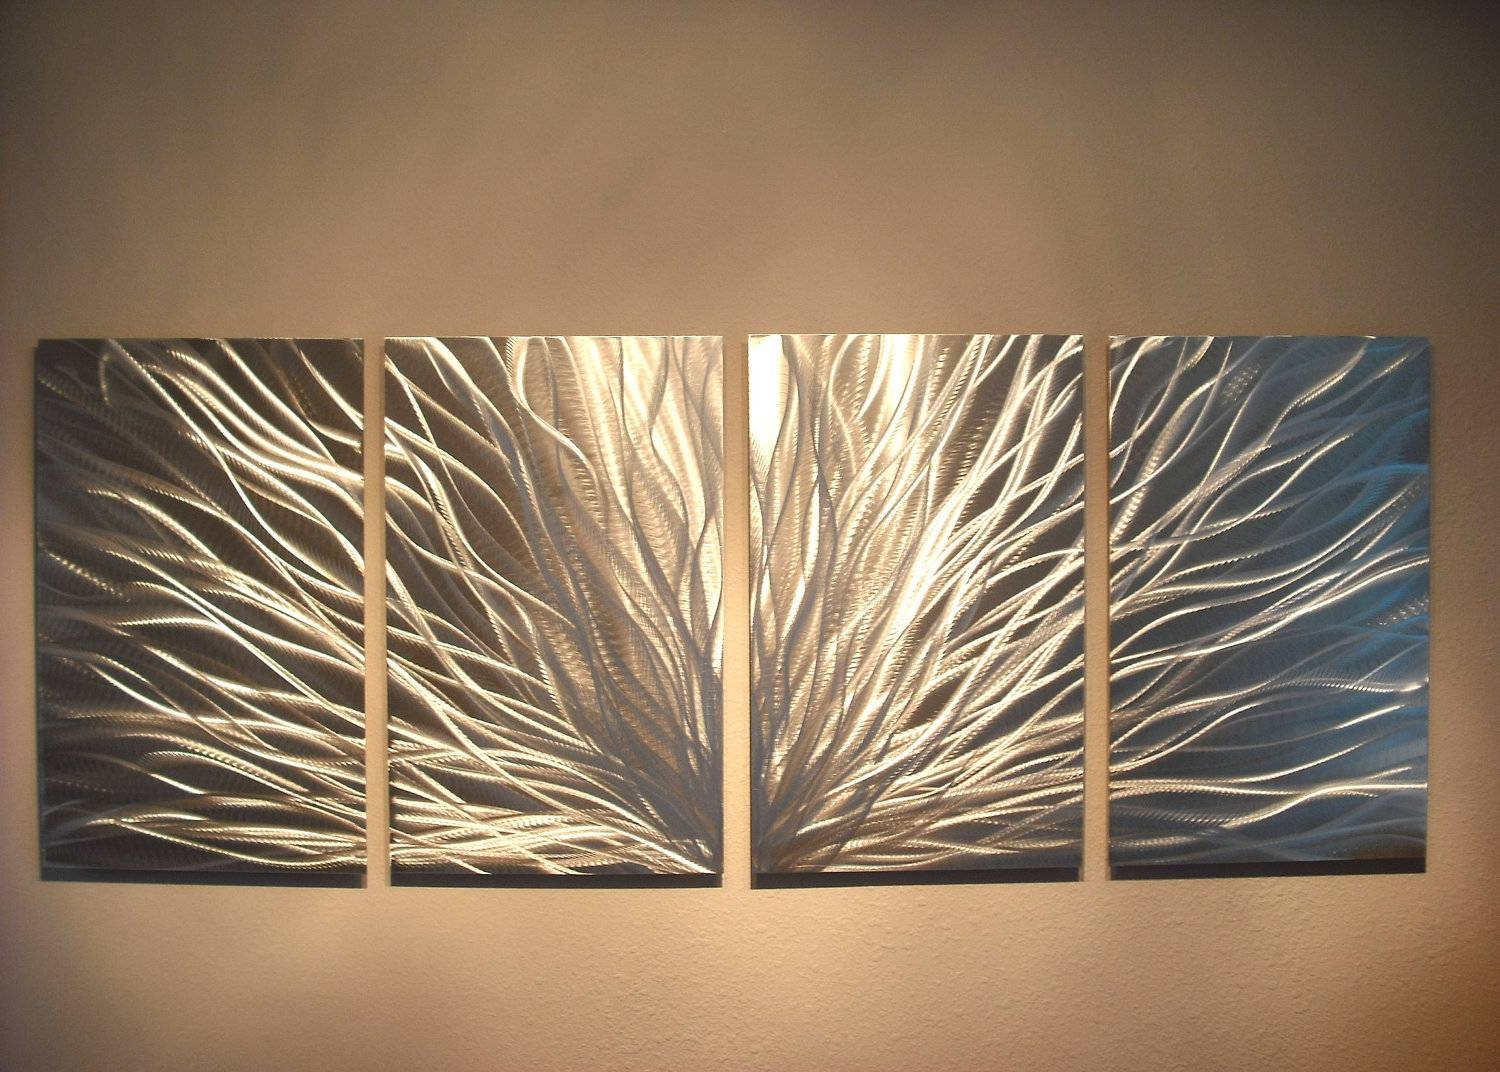 Radiance – Abstract Metal Wall Art Contemporary Modern Decor Pertaining To 2018 Large Metal Art (View 15 of 20)